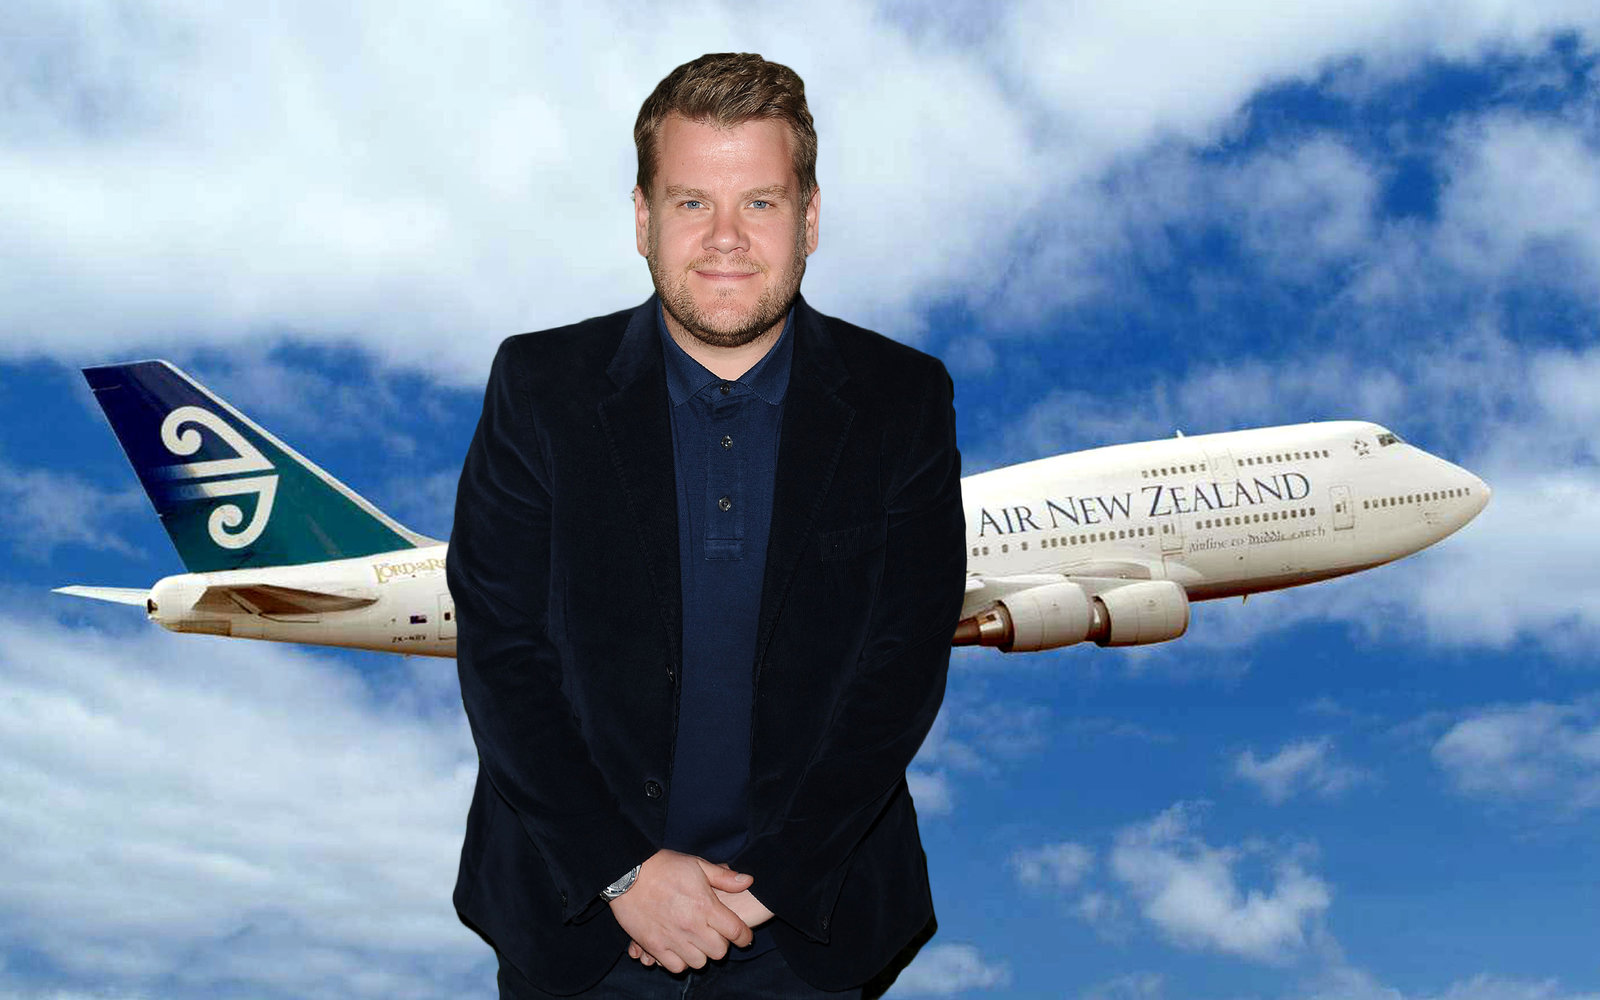 Air New Zealand Wants James Corden to Cockpit Karaoke